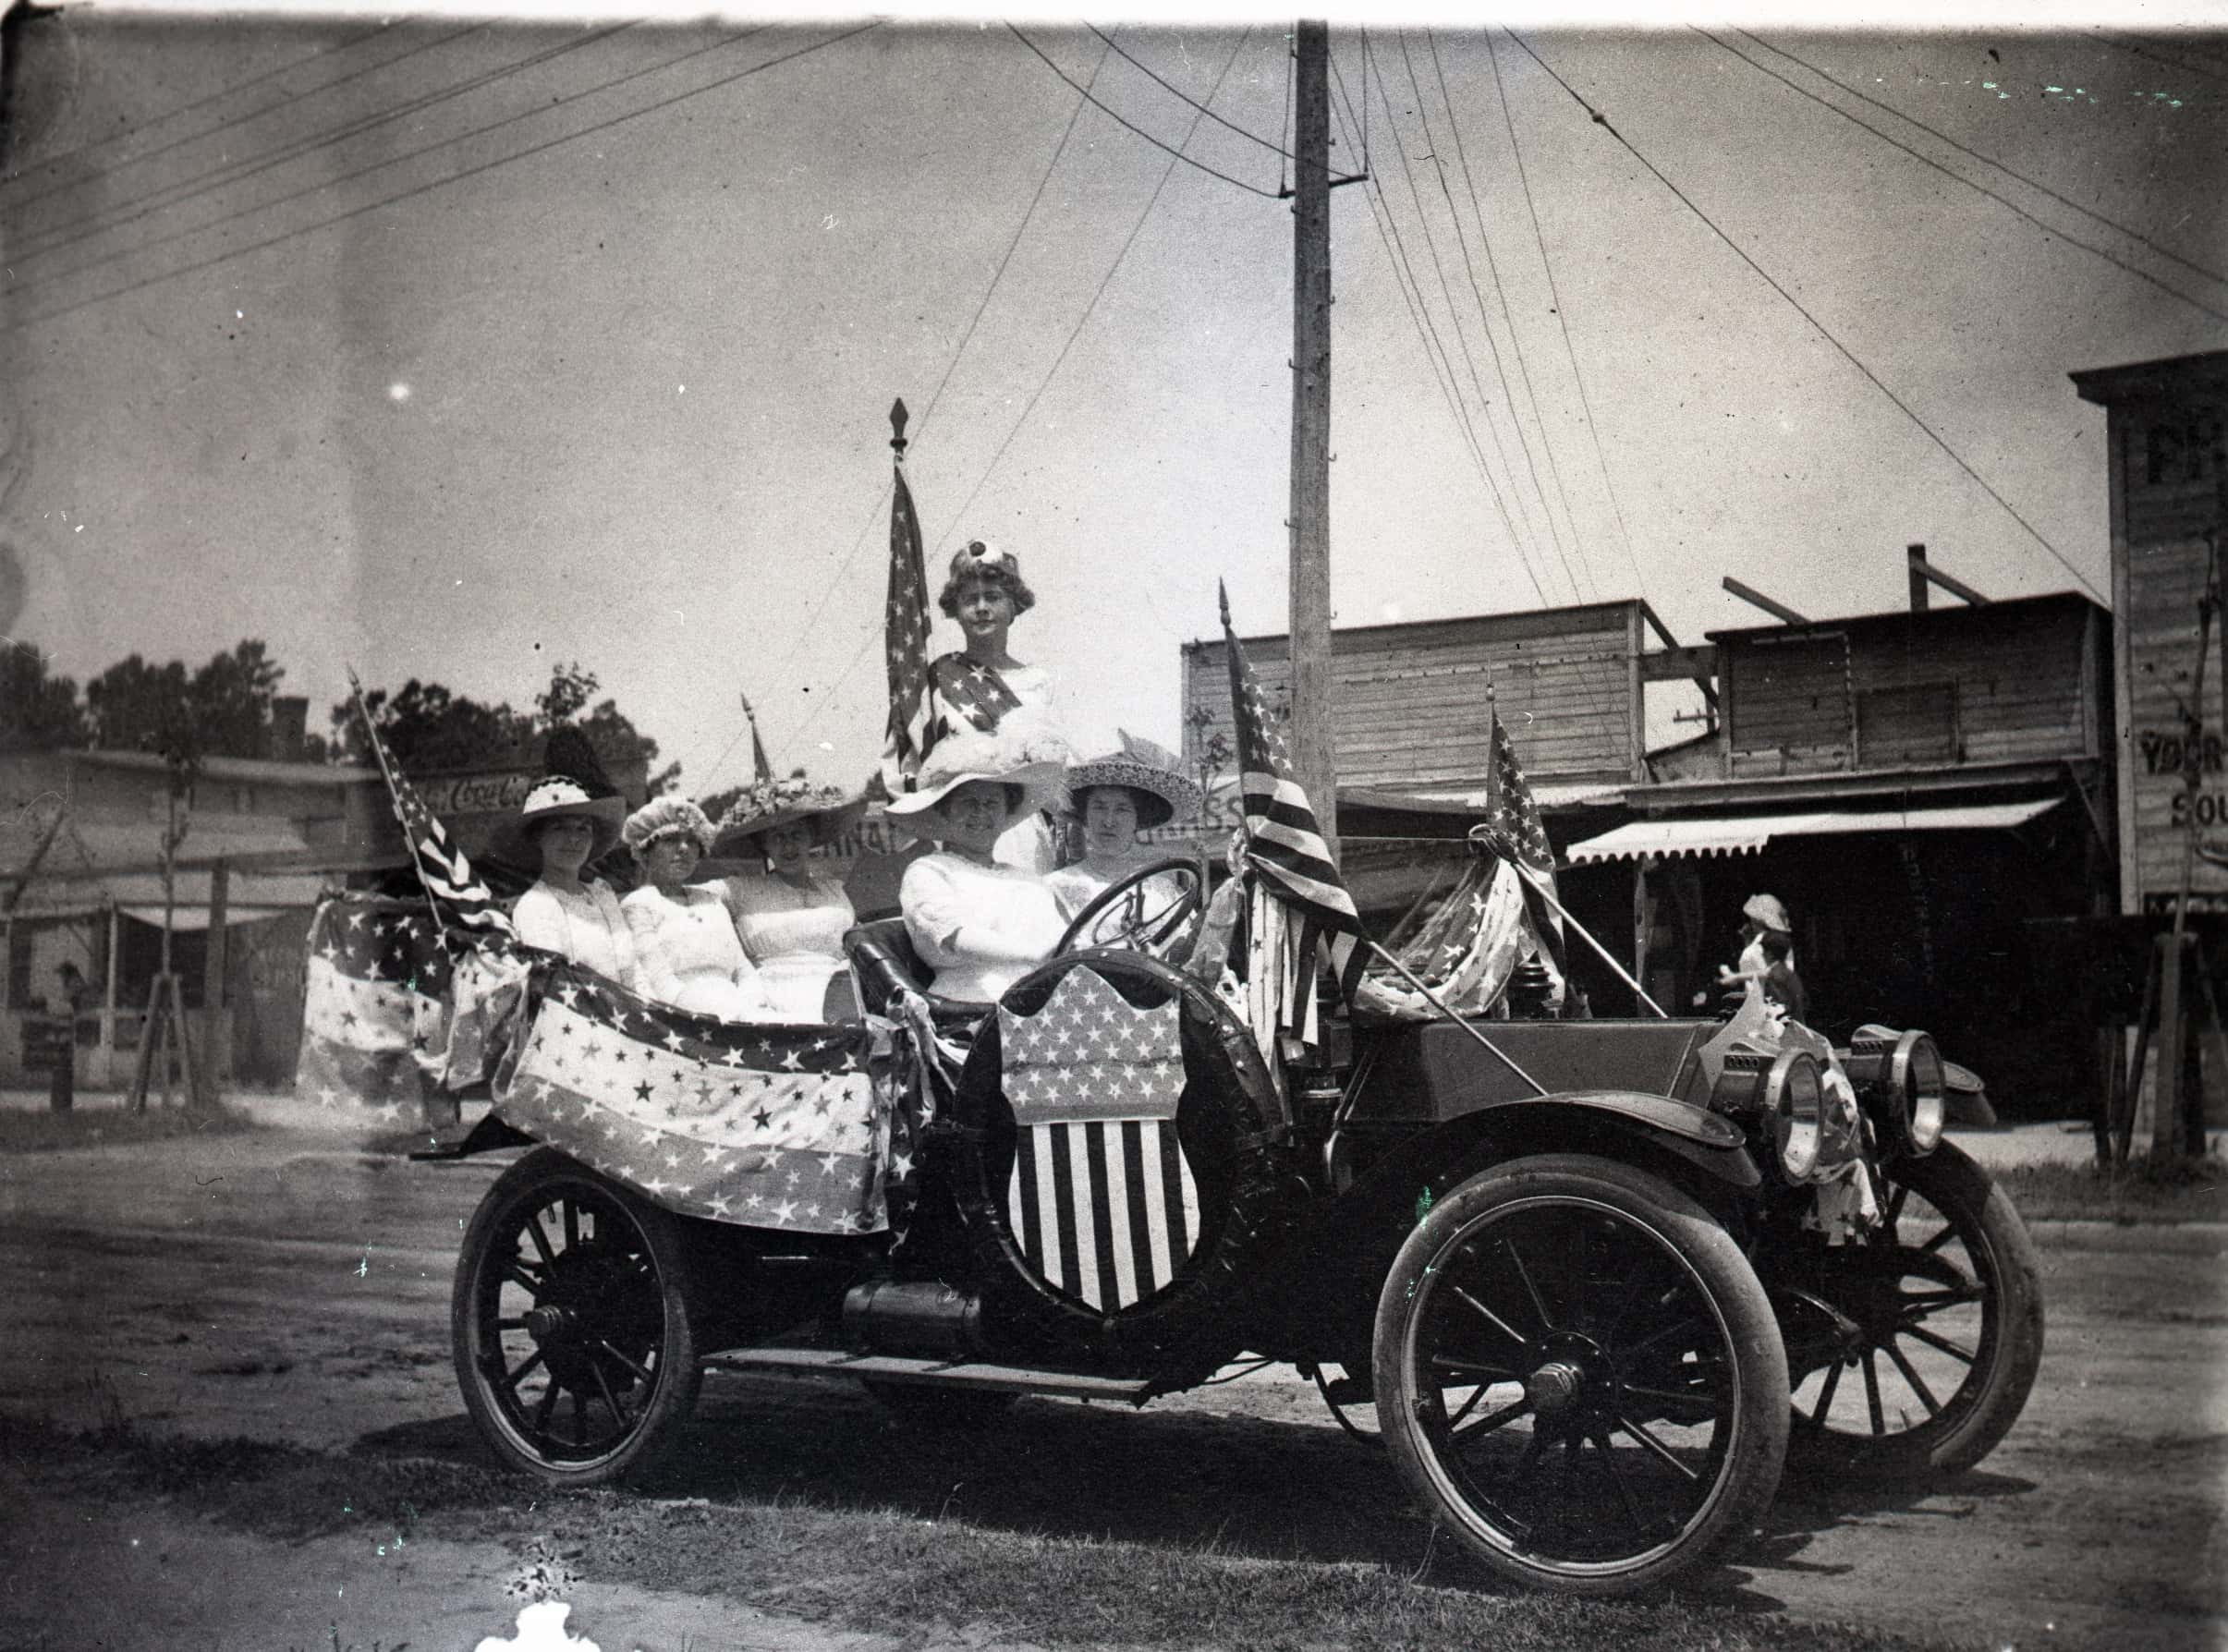 AC223N-Events-4th-of-July-parade-entry-Circa-1920s.jpg